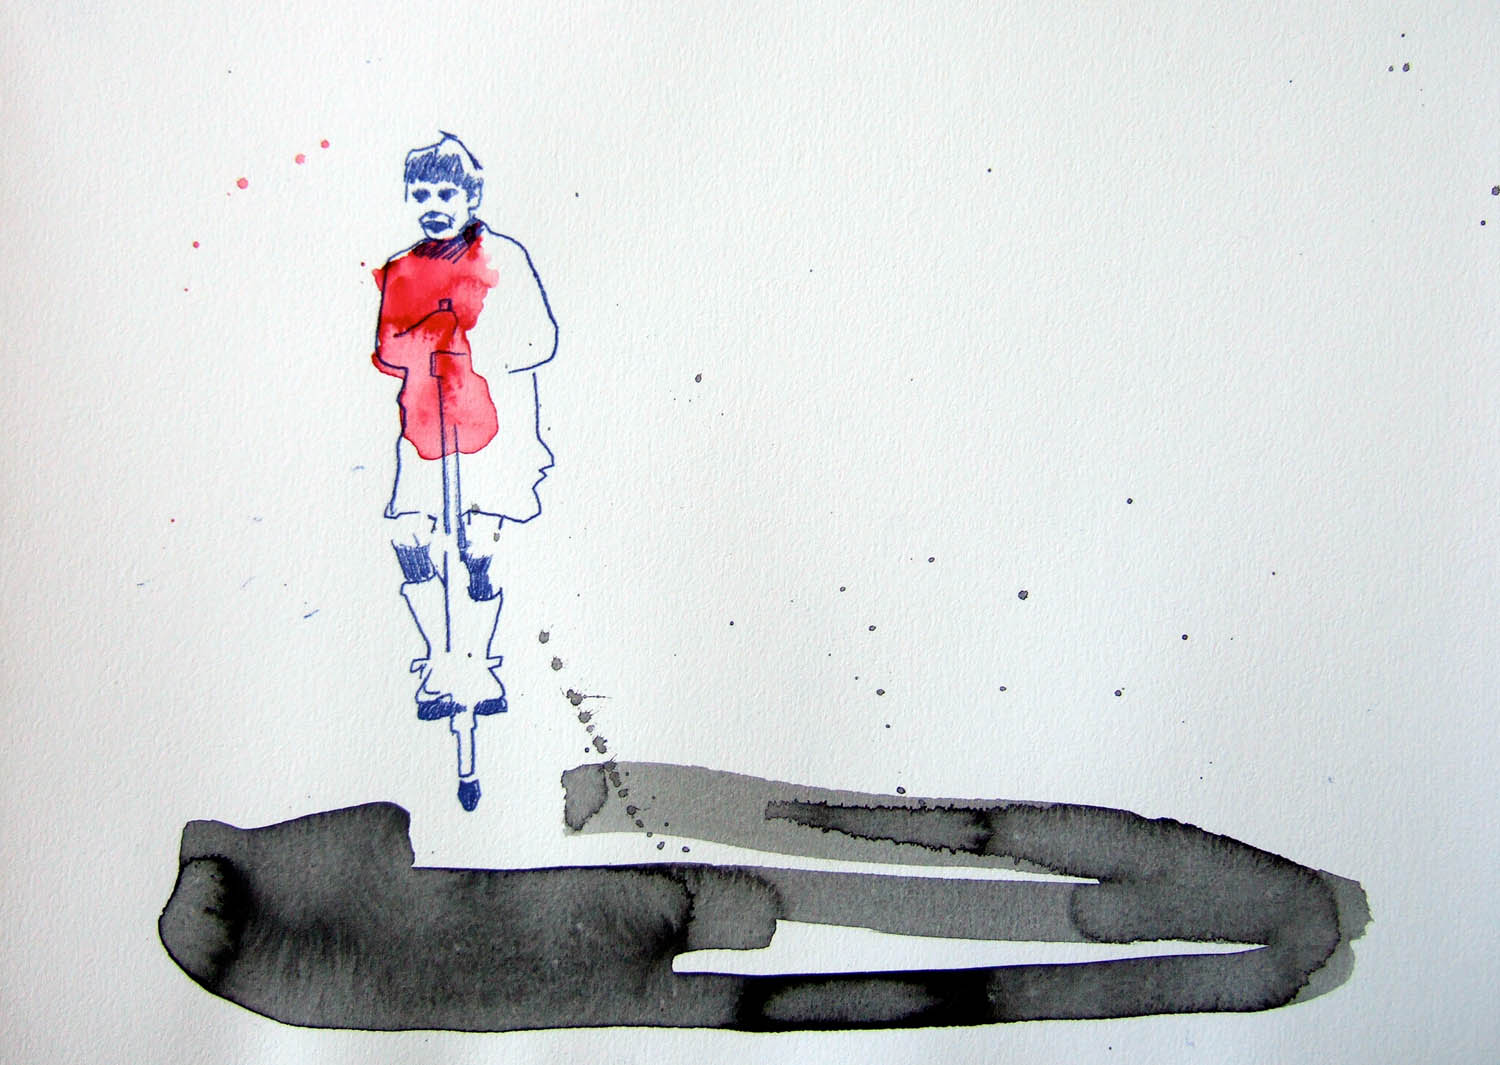 Bop Bop Bandita (2010), watercolour and ink on paper, 210 x 297mm